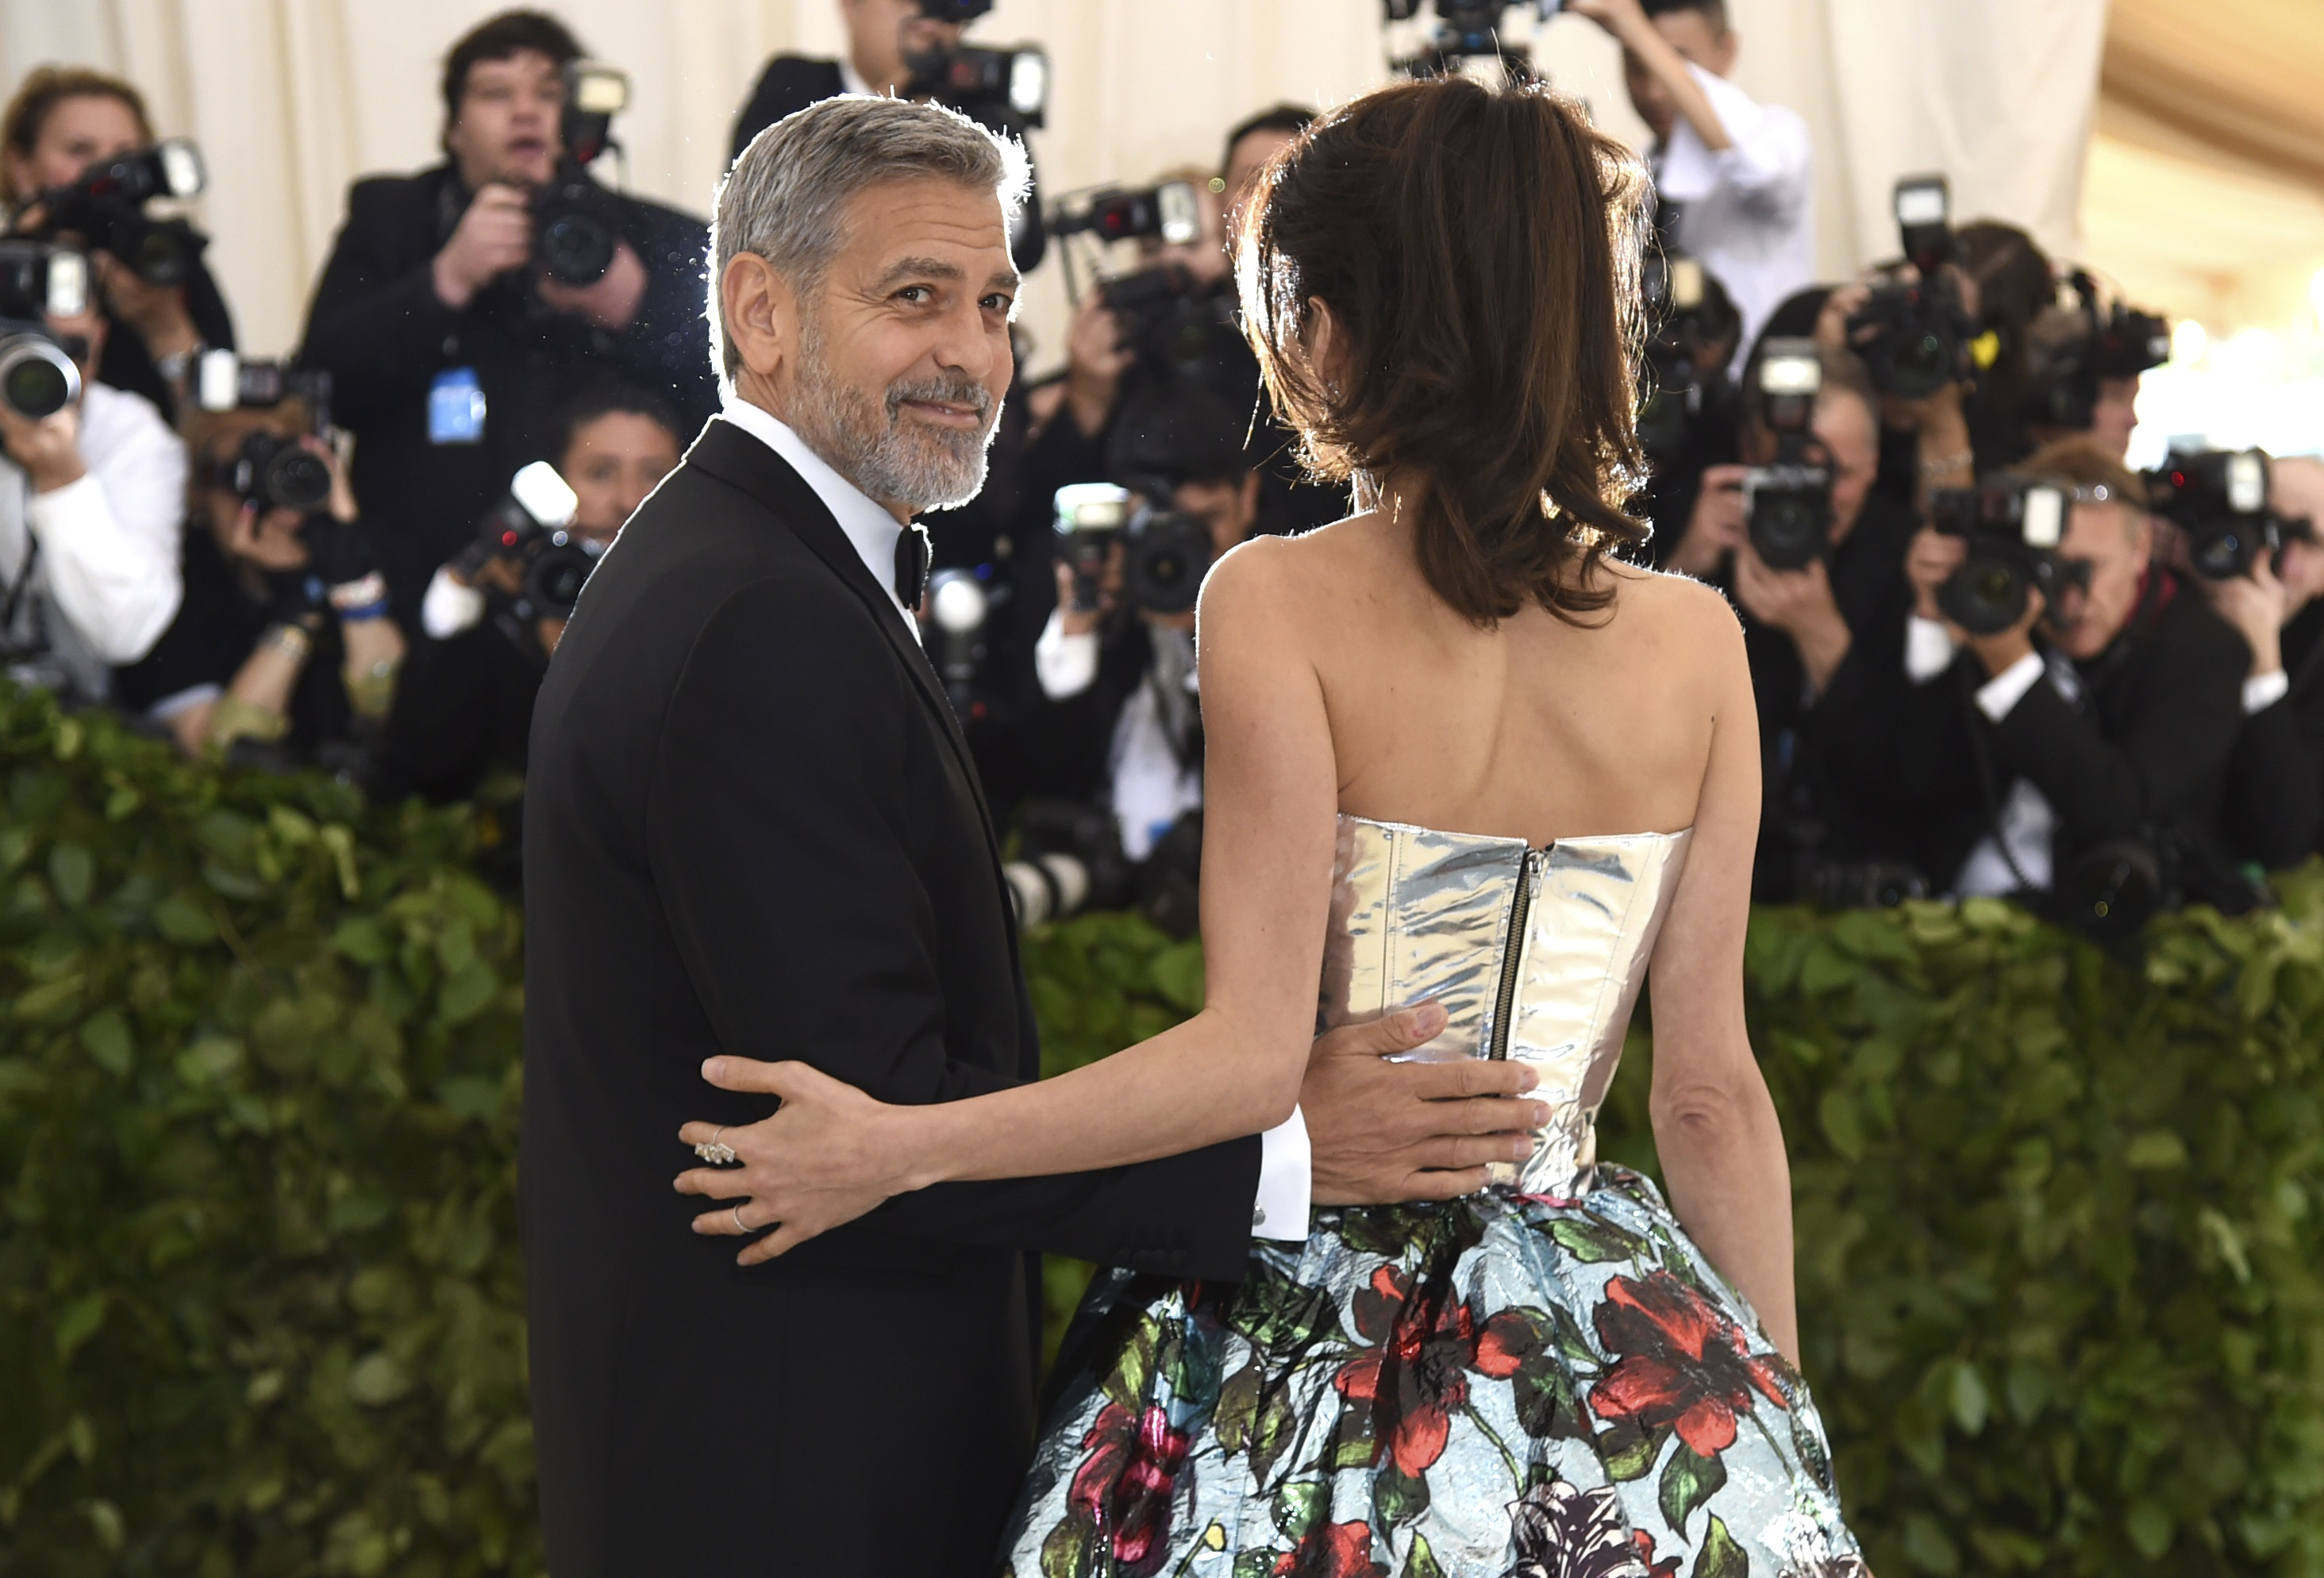 <div class='meta'><div class='origin-logo' data-origin='AP'></div><span class='caption-text' data-credit='Evan Agostini/Invision/AP'>George Clooney, left, and Amal Clooney. (Photo by Evan Agostini/Invision/AP)</span></div>